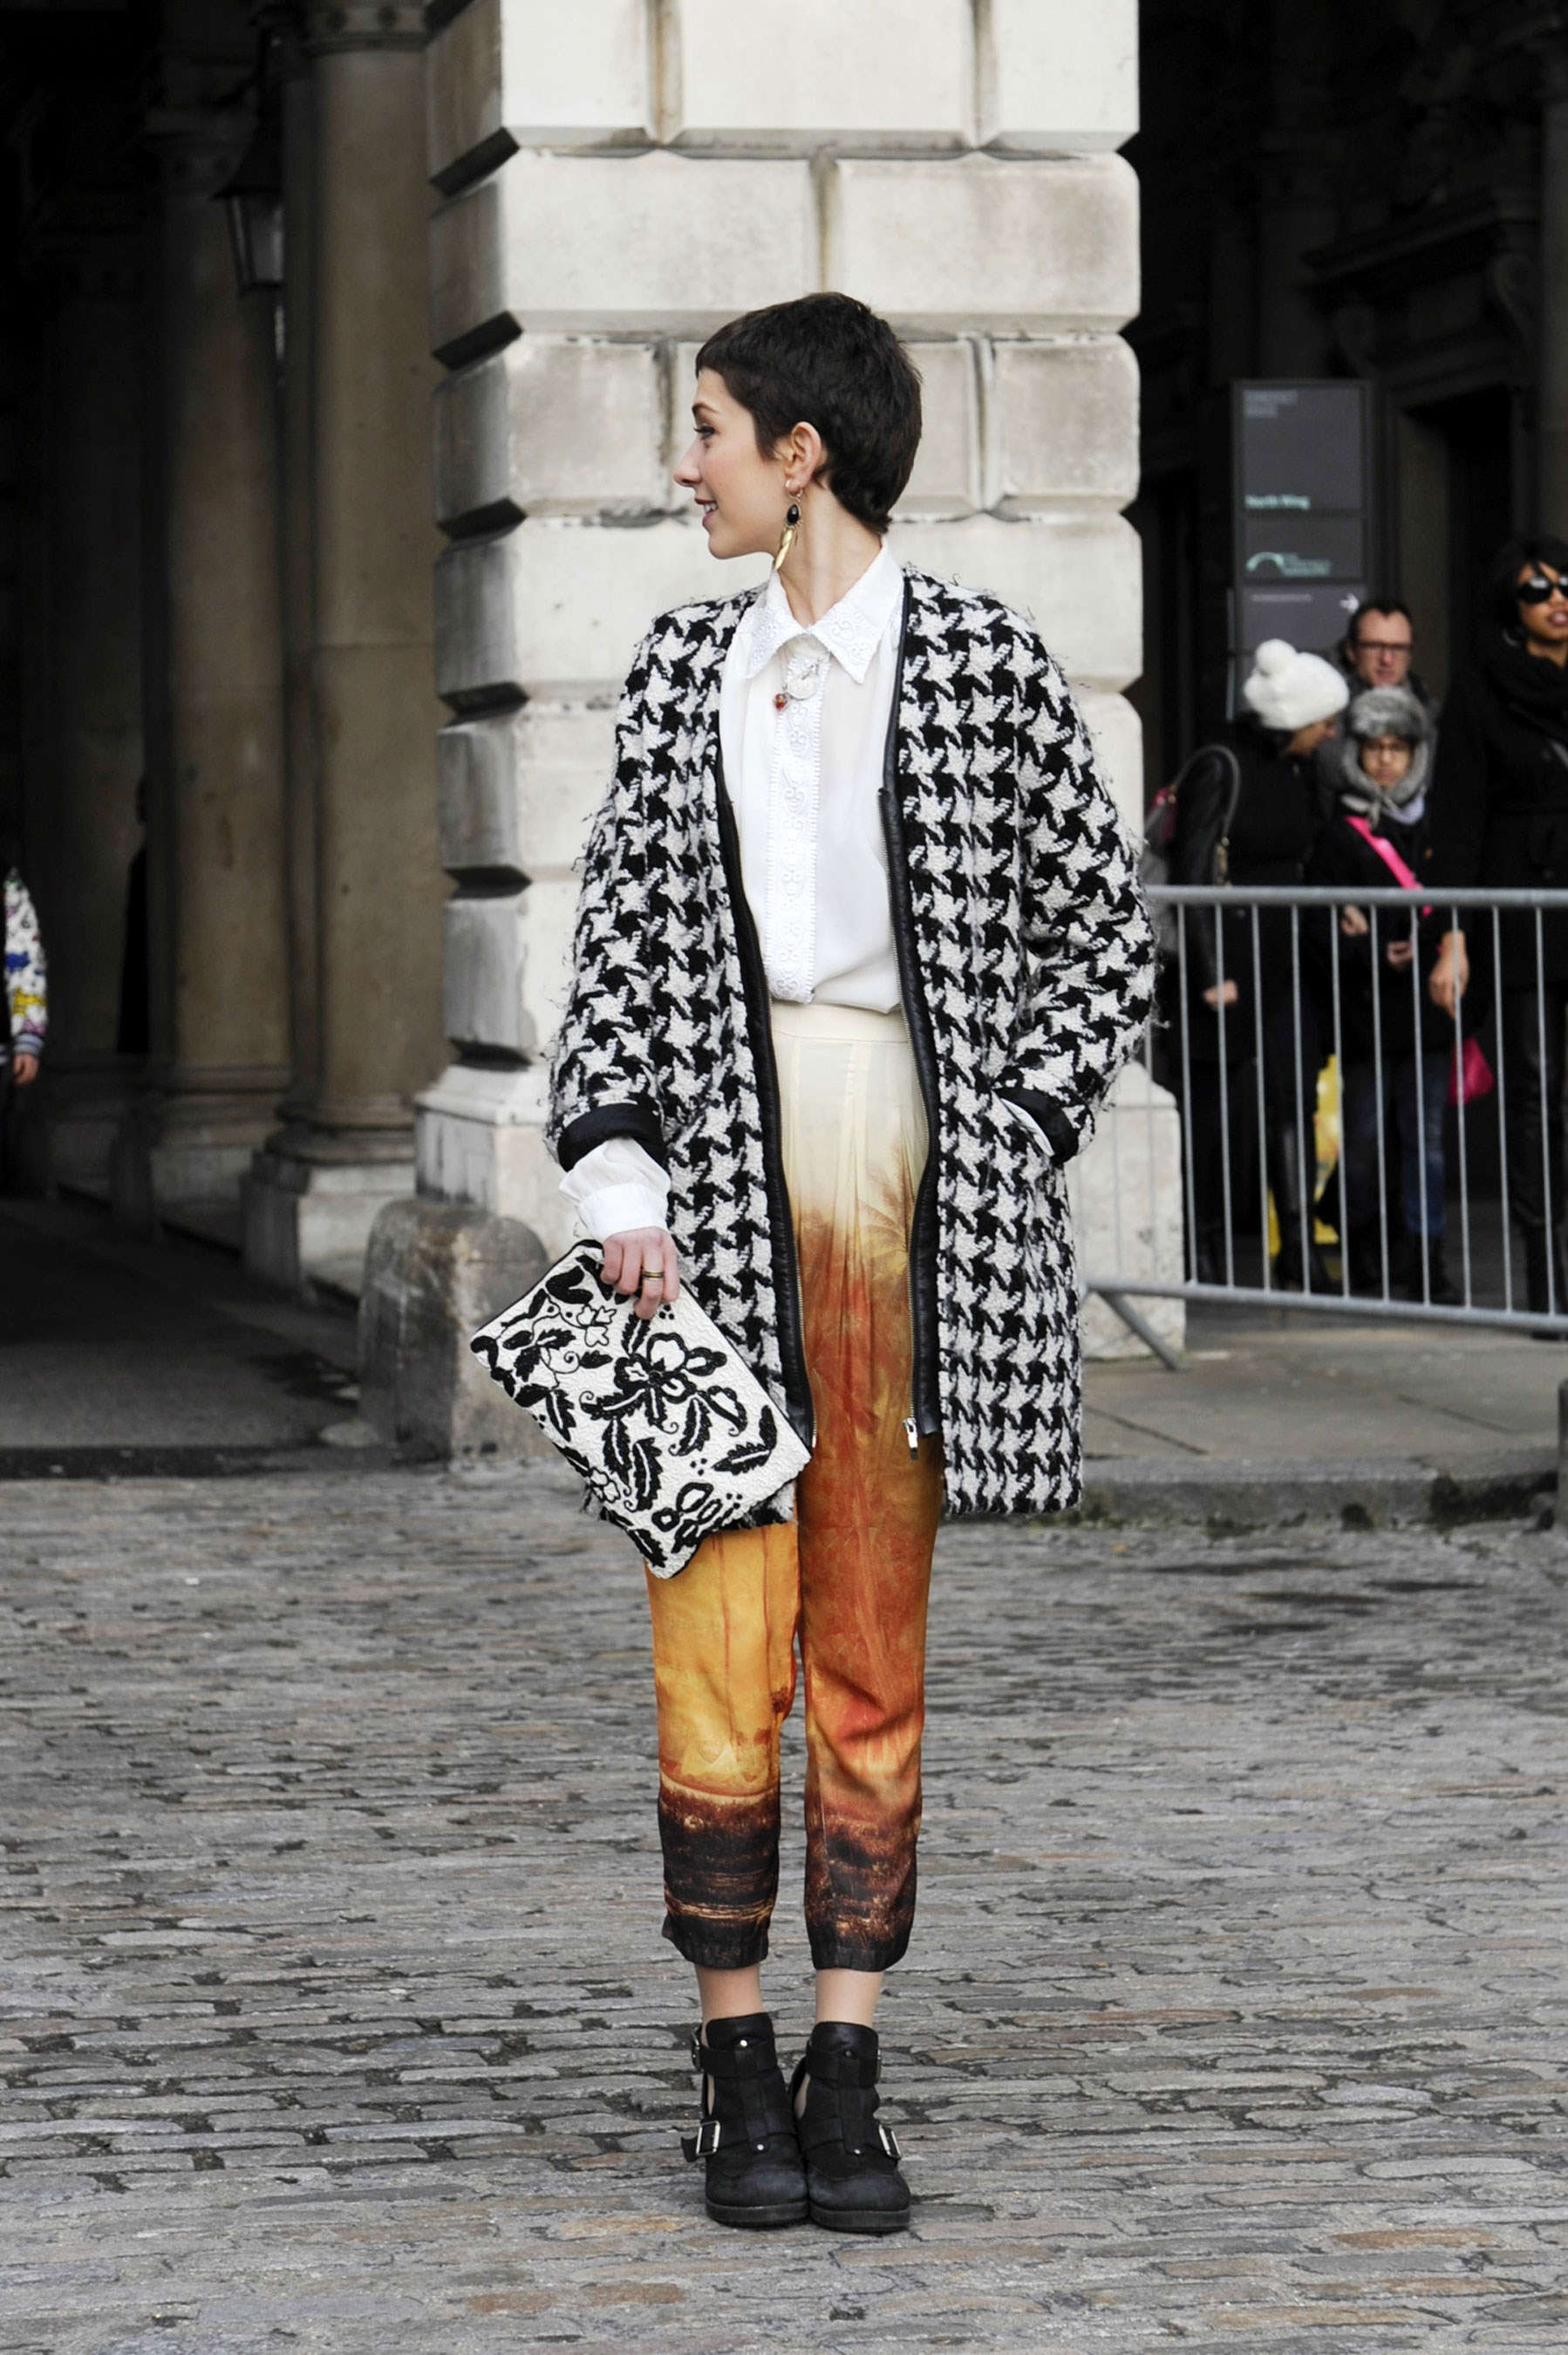 Clashing houndstooth with printed pants and a floral clutch gets a stylish tick of approval